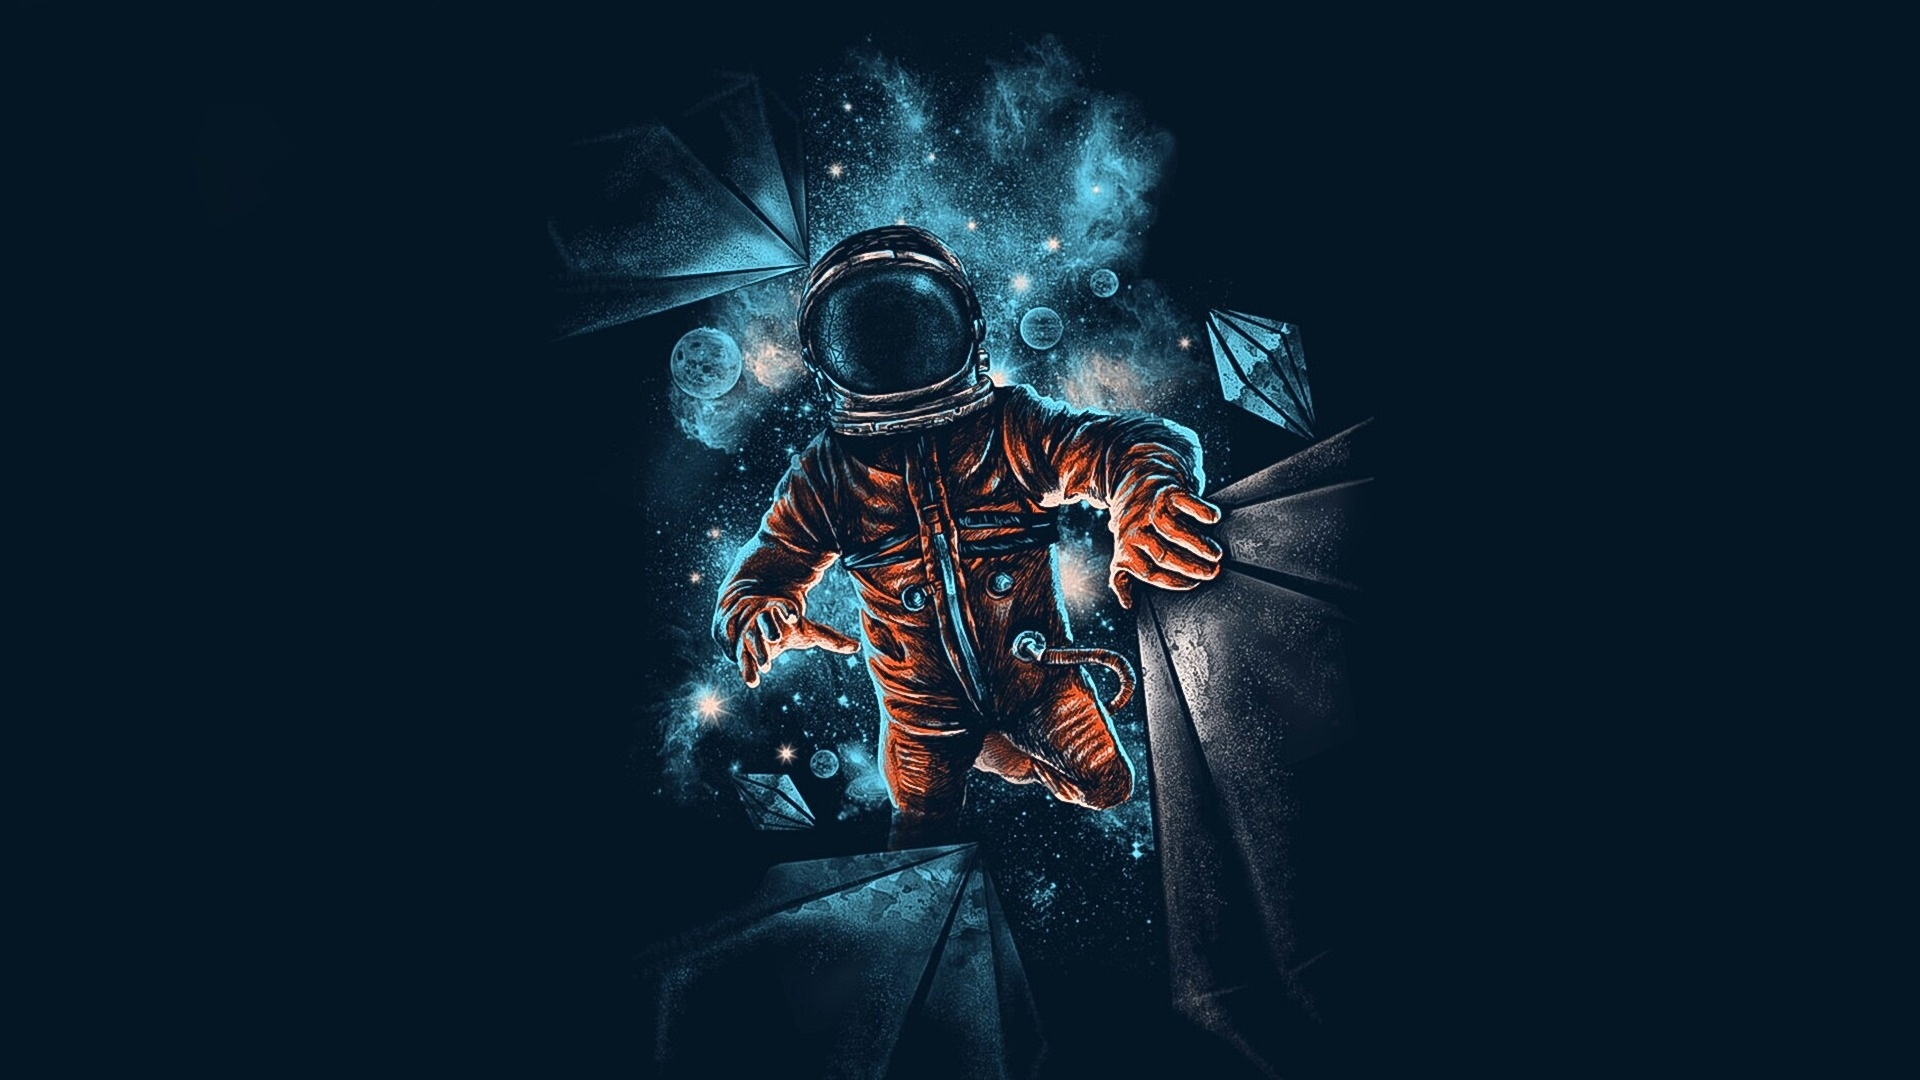 Download 1920x1080 wallpaper space astronaut galaxy dark artwork full hd hdtv fhd 1080p - 1366x768 is 720p or 1080p ...